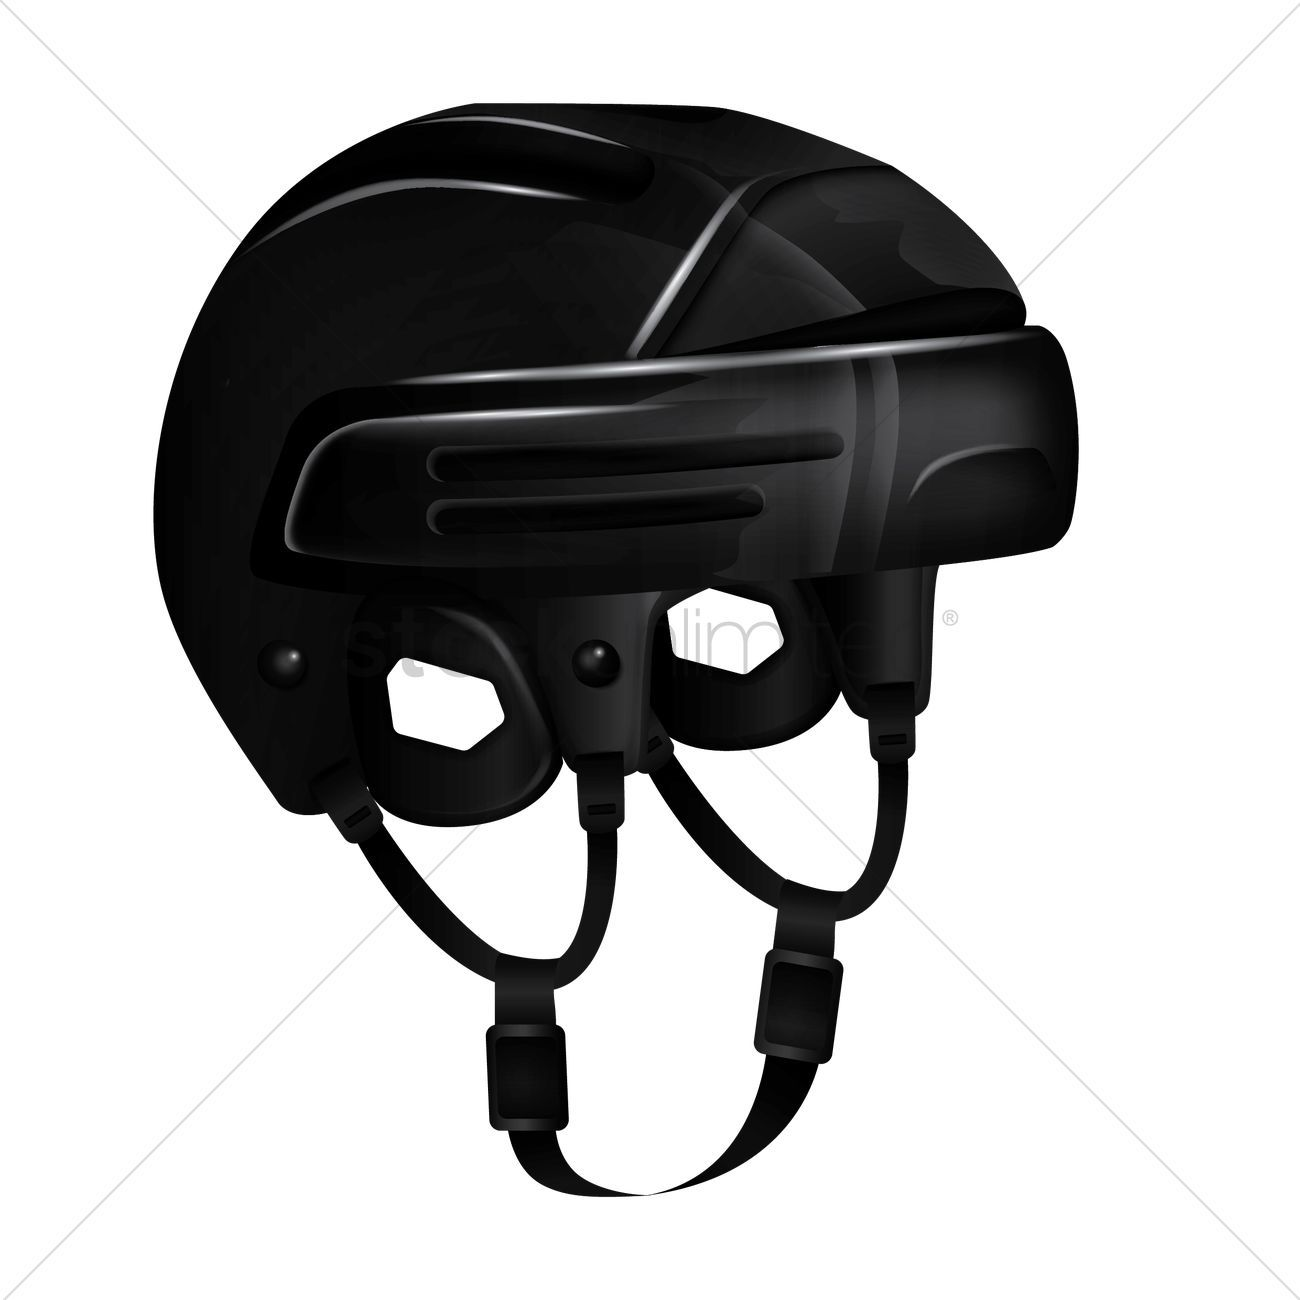 Bicycle Helmet Vector Illustration Ad Helmet Bicycle